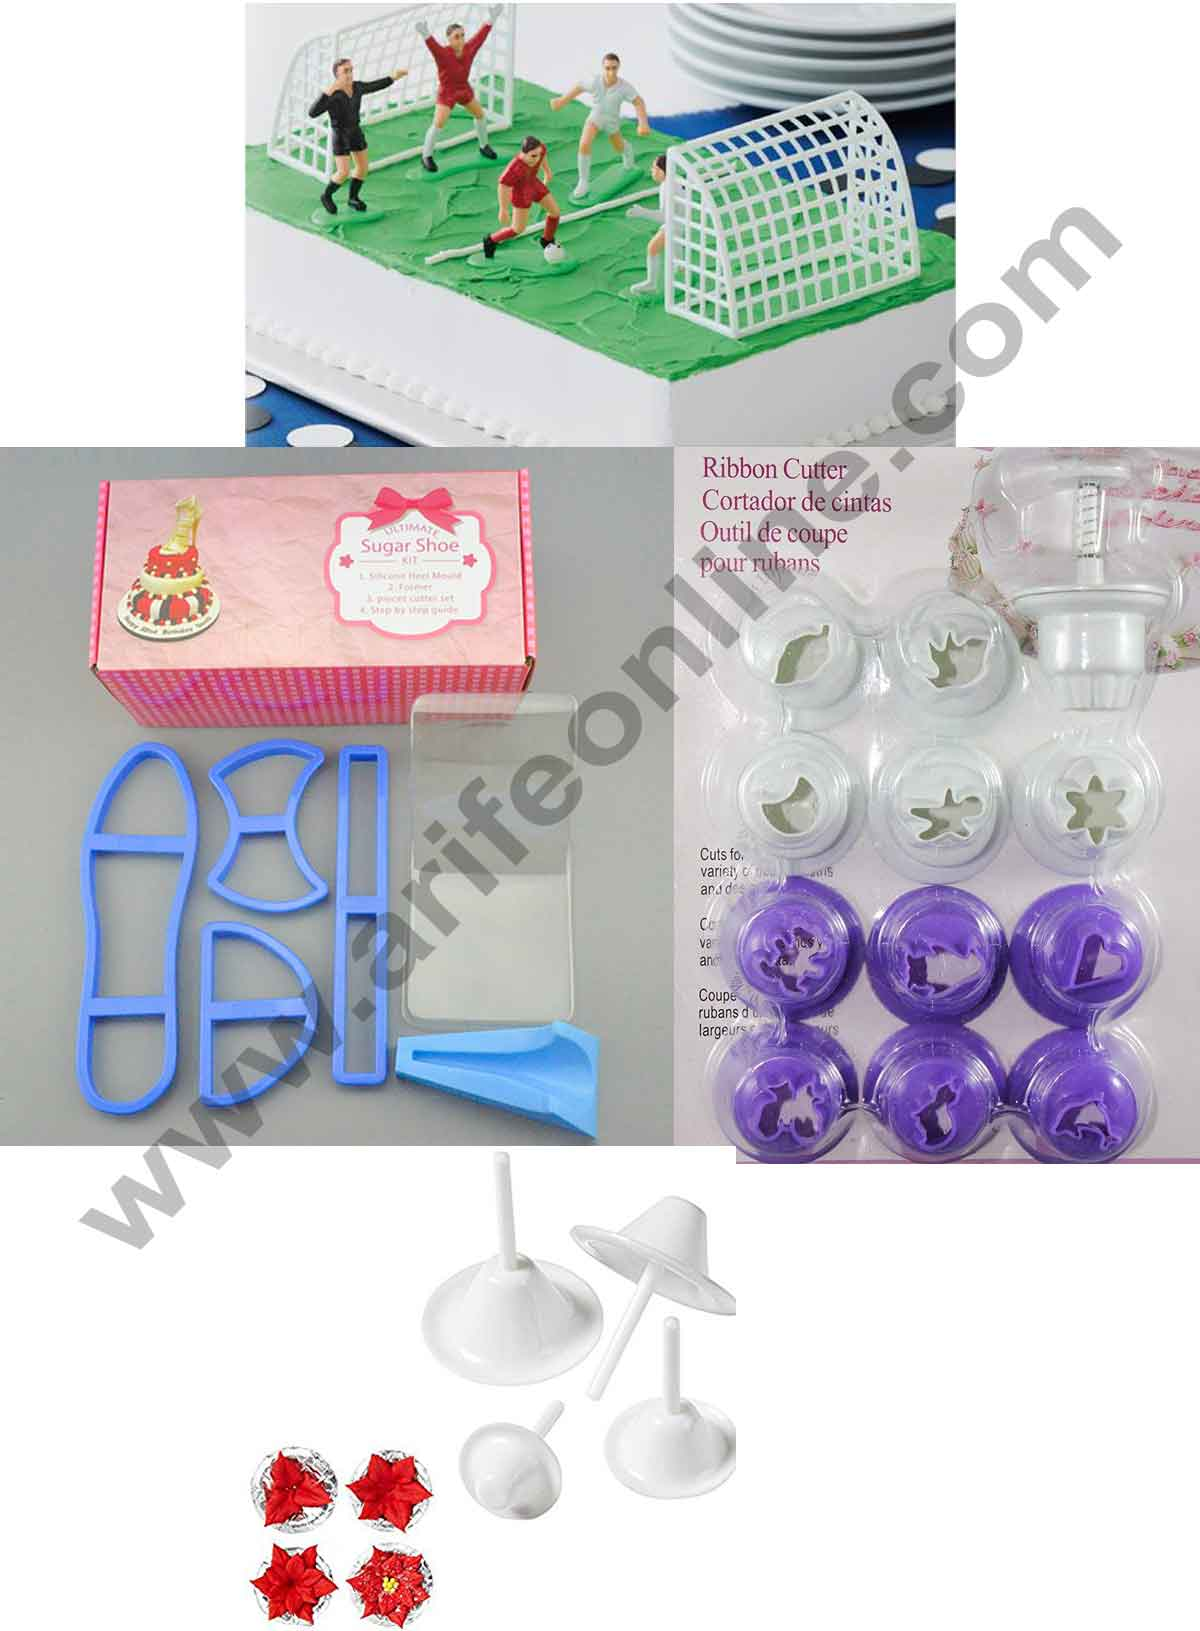 Fondant Cakes Decoration Tools Combo with Football Toys